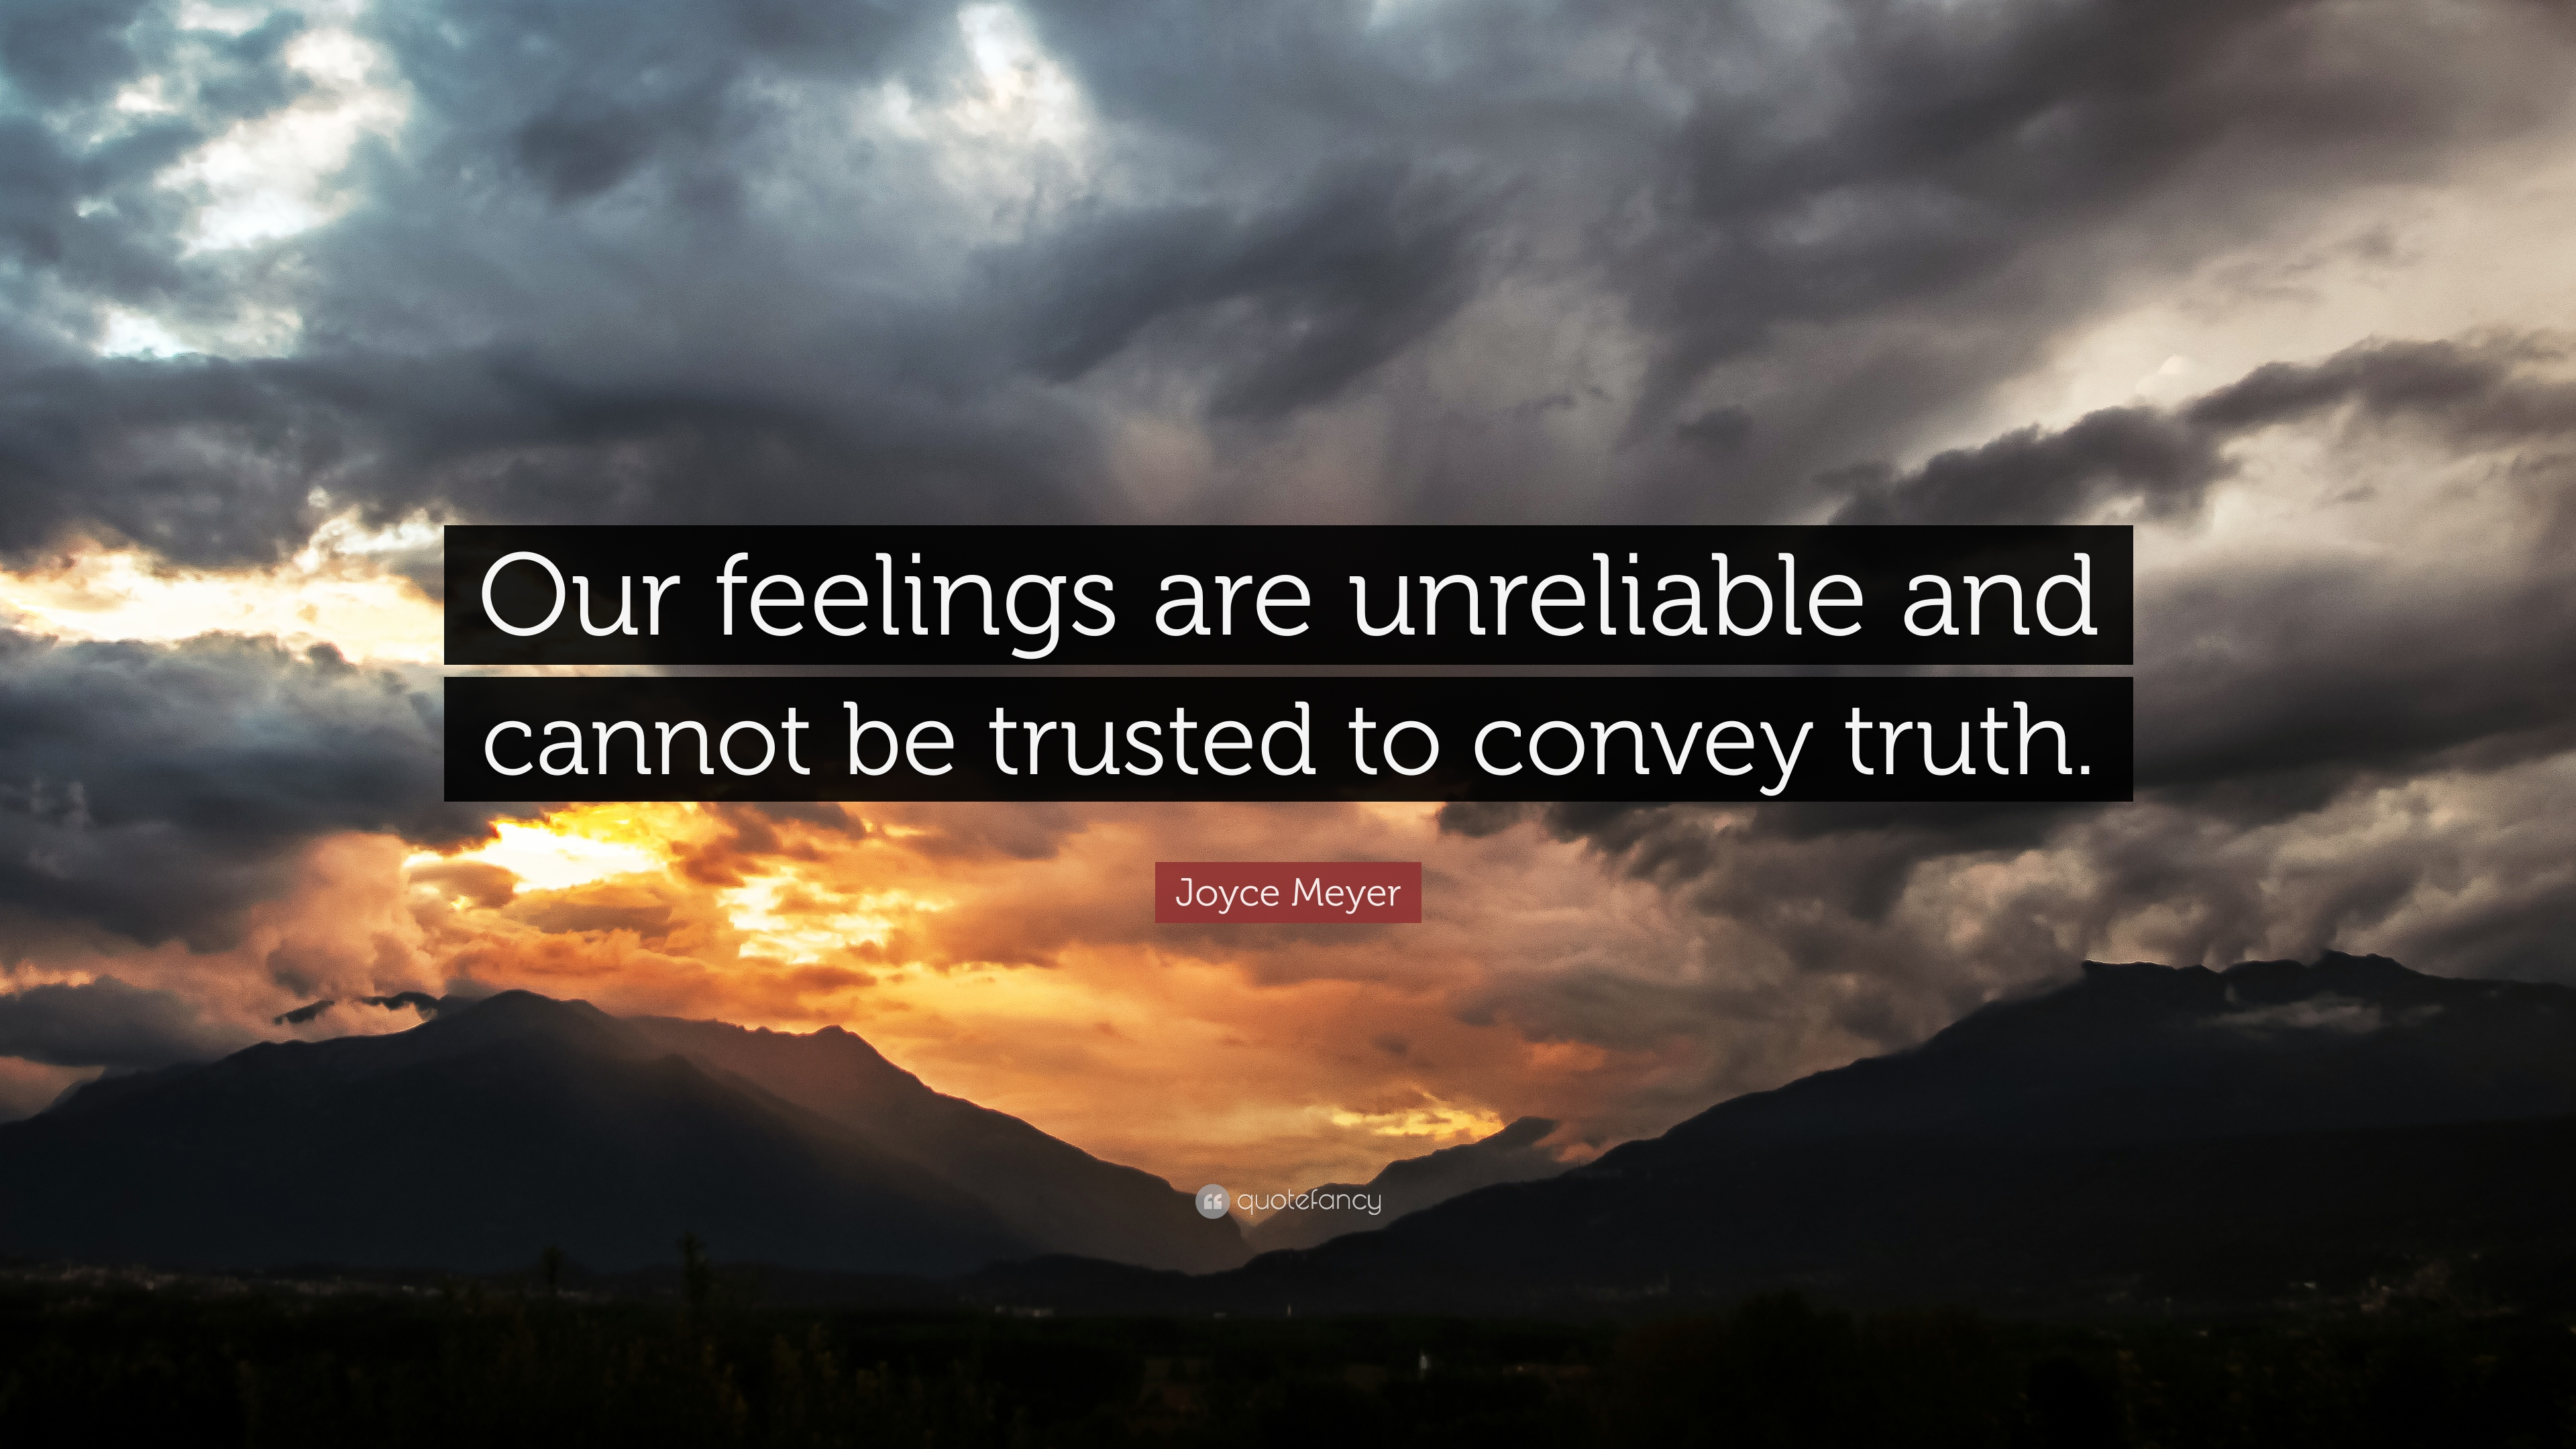 Joyce Meyer Quotes About Feelings